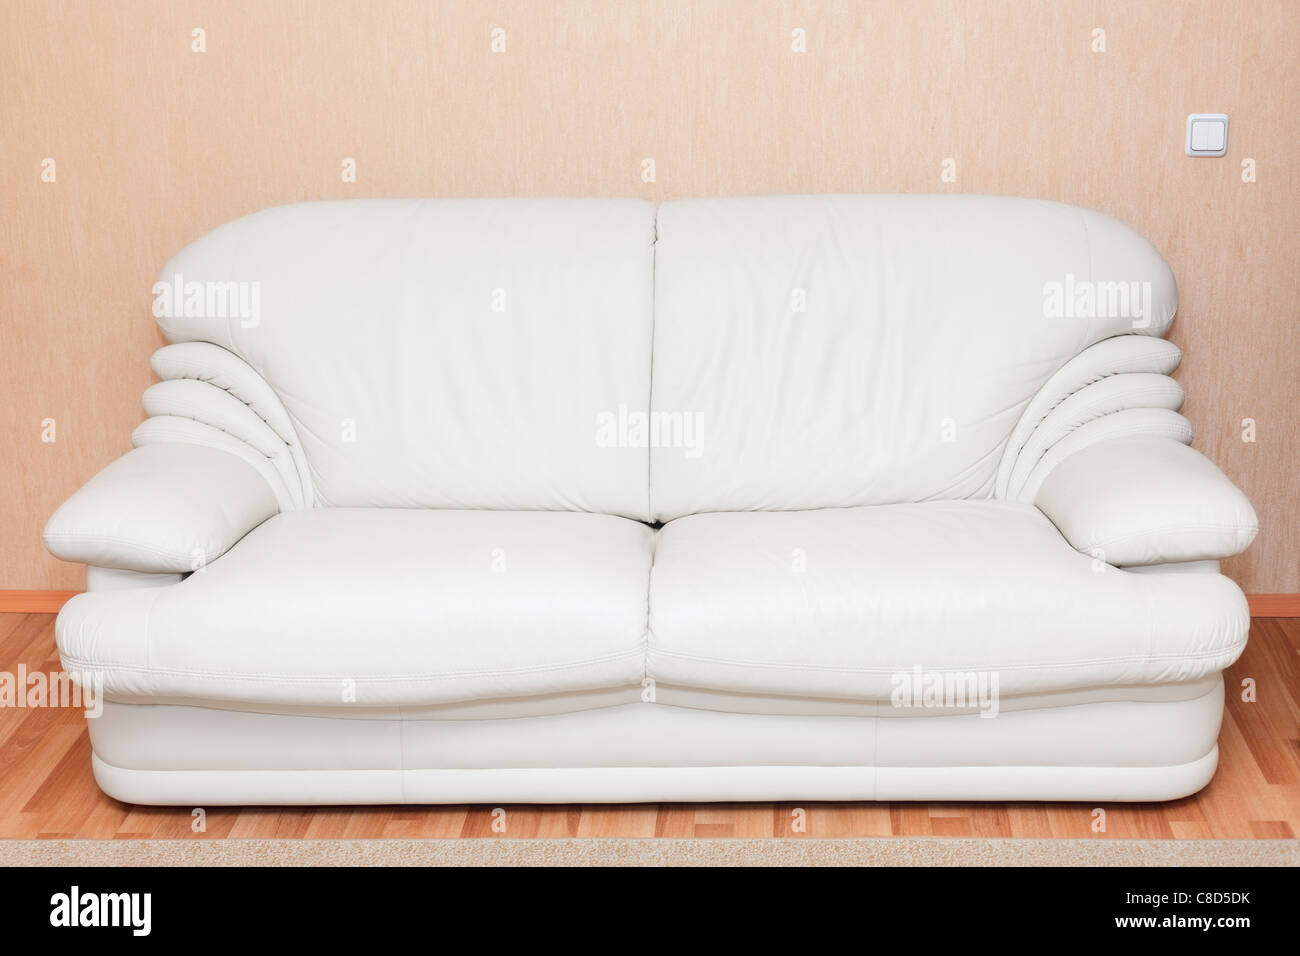 White leather couch in the room interior. Nobody - Stock Image